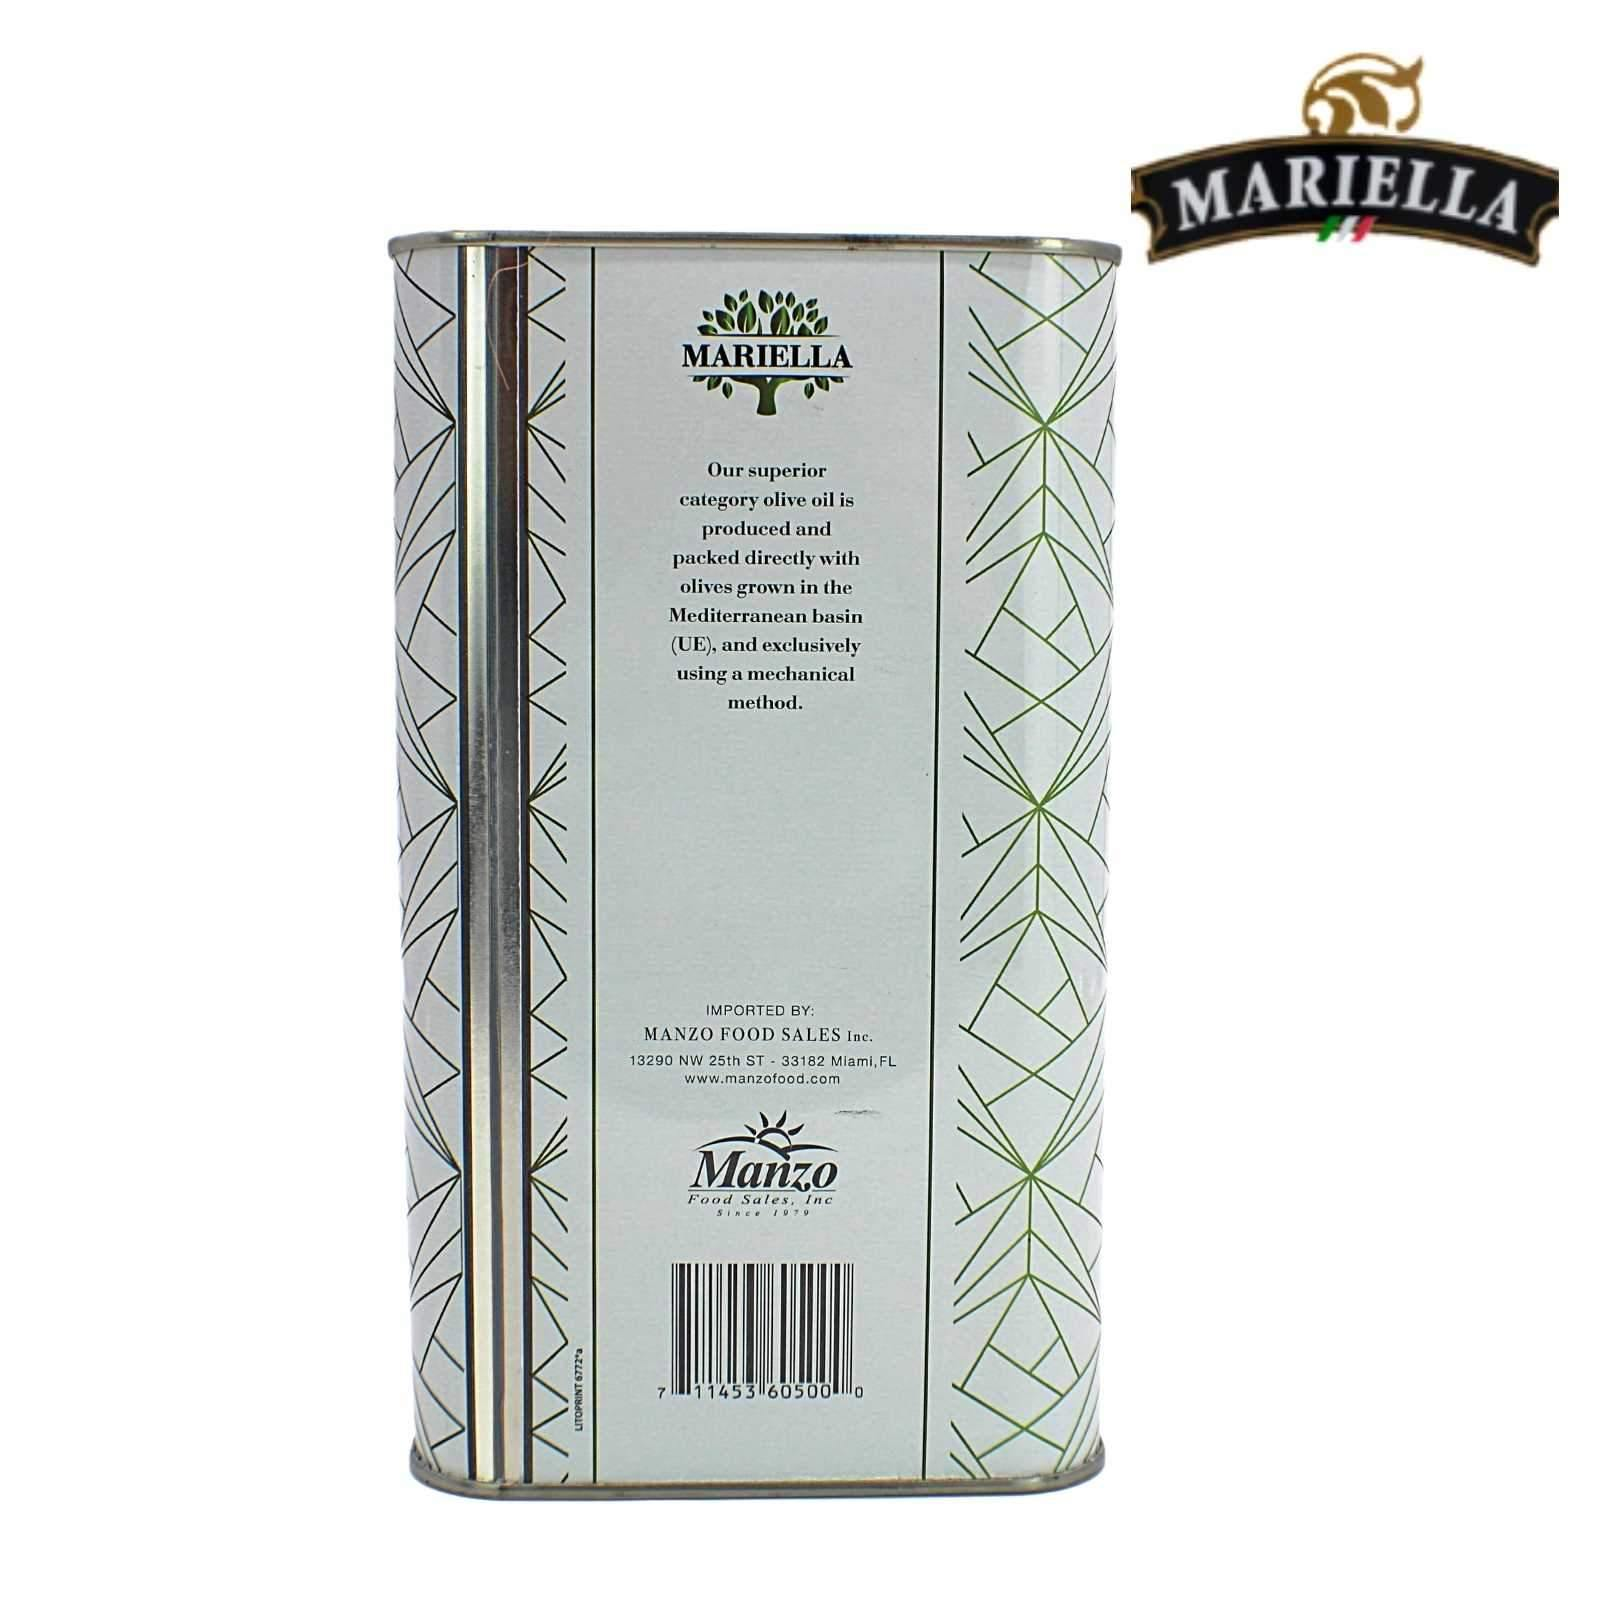 Mariella Extra Virgin Olive Oil - 3L